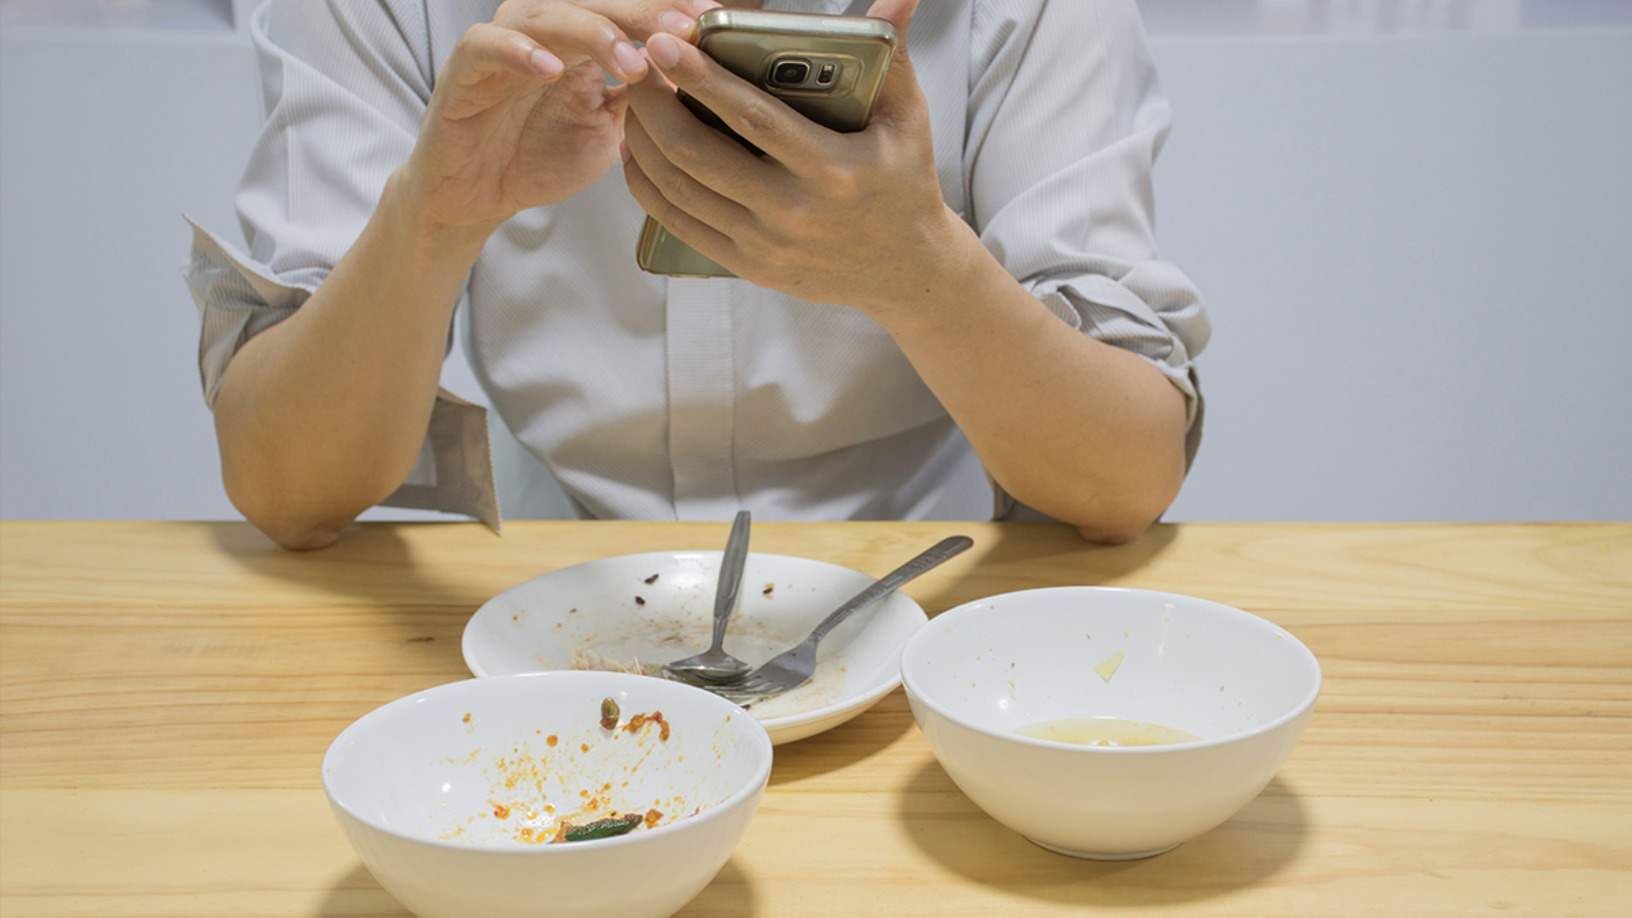 Clear Plate: Anti-food waste AI that rewards the diners who finish their food